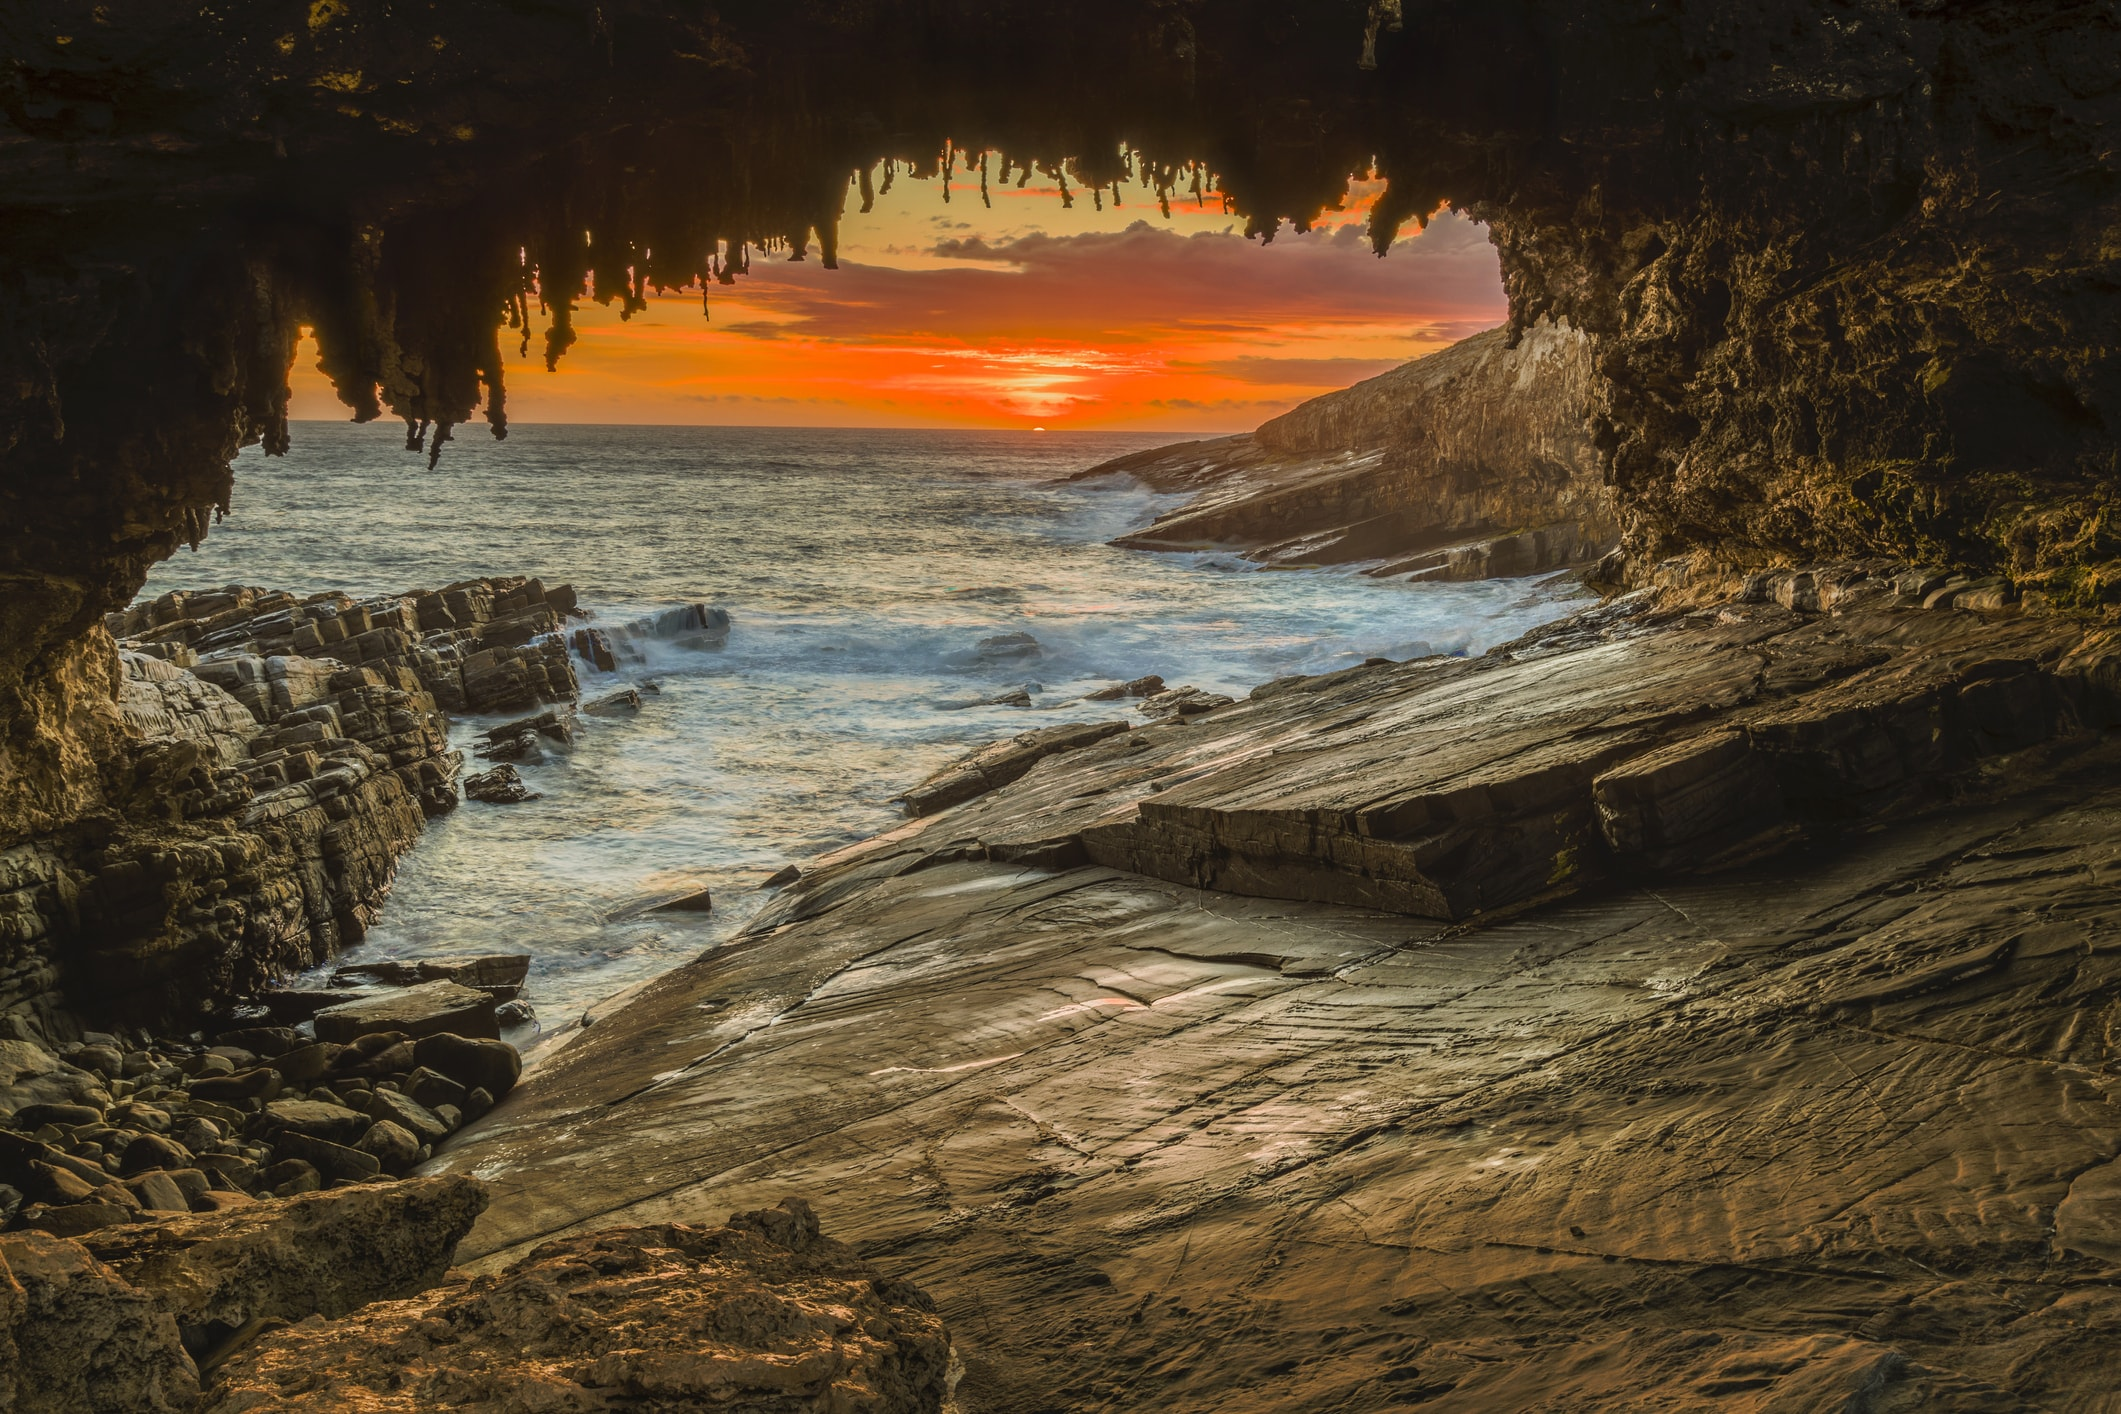 Sunset at Admiral's Arch - a popular caving site on Kangaroo Island.